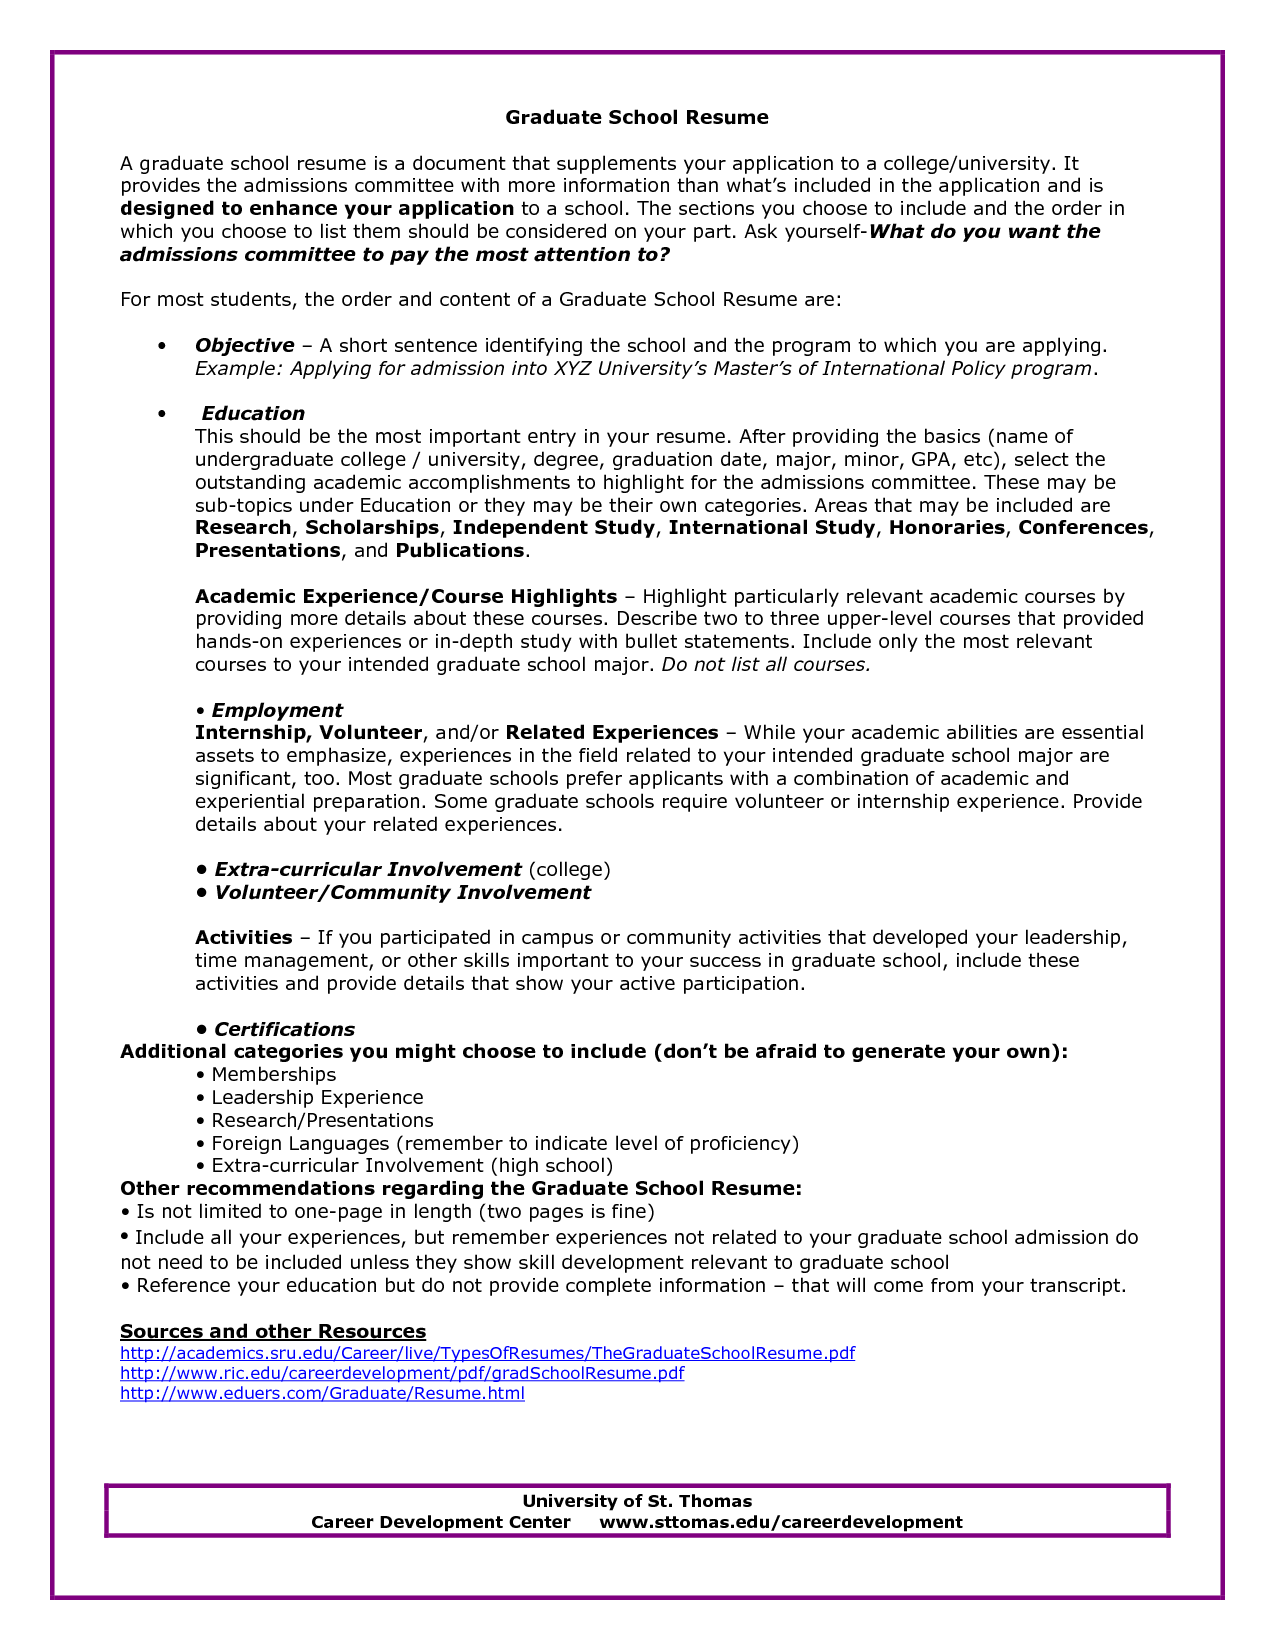 Graduate School Admissions Resume Sample  HttpWwwResumecareer